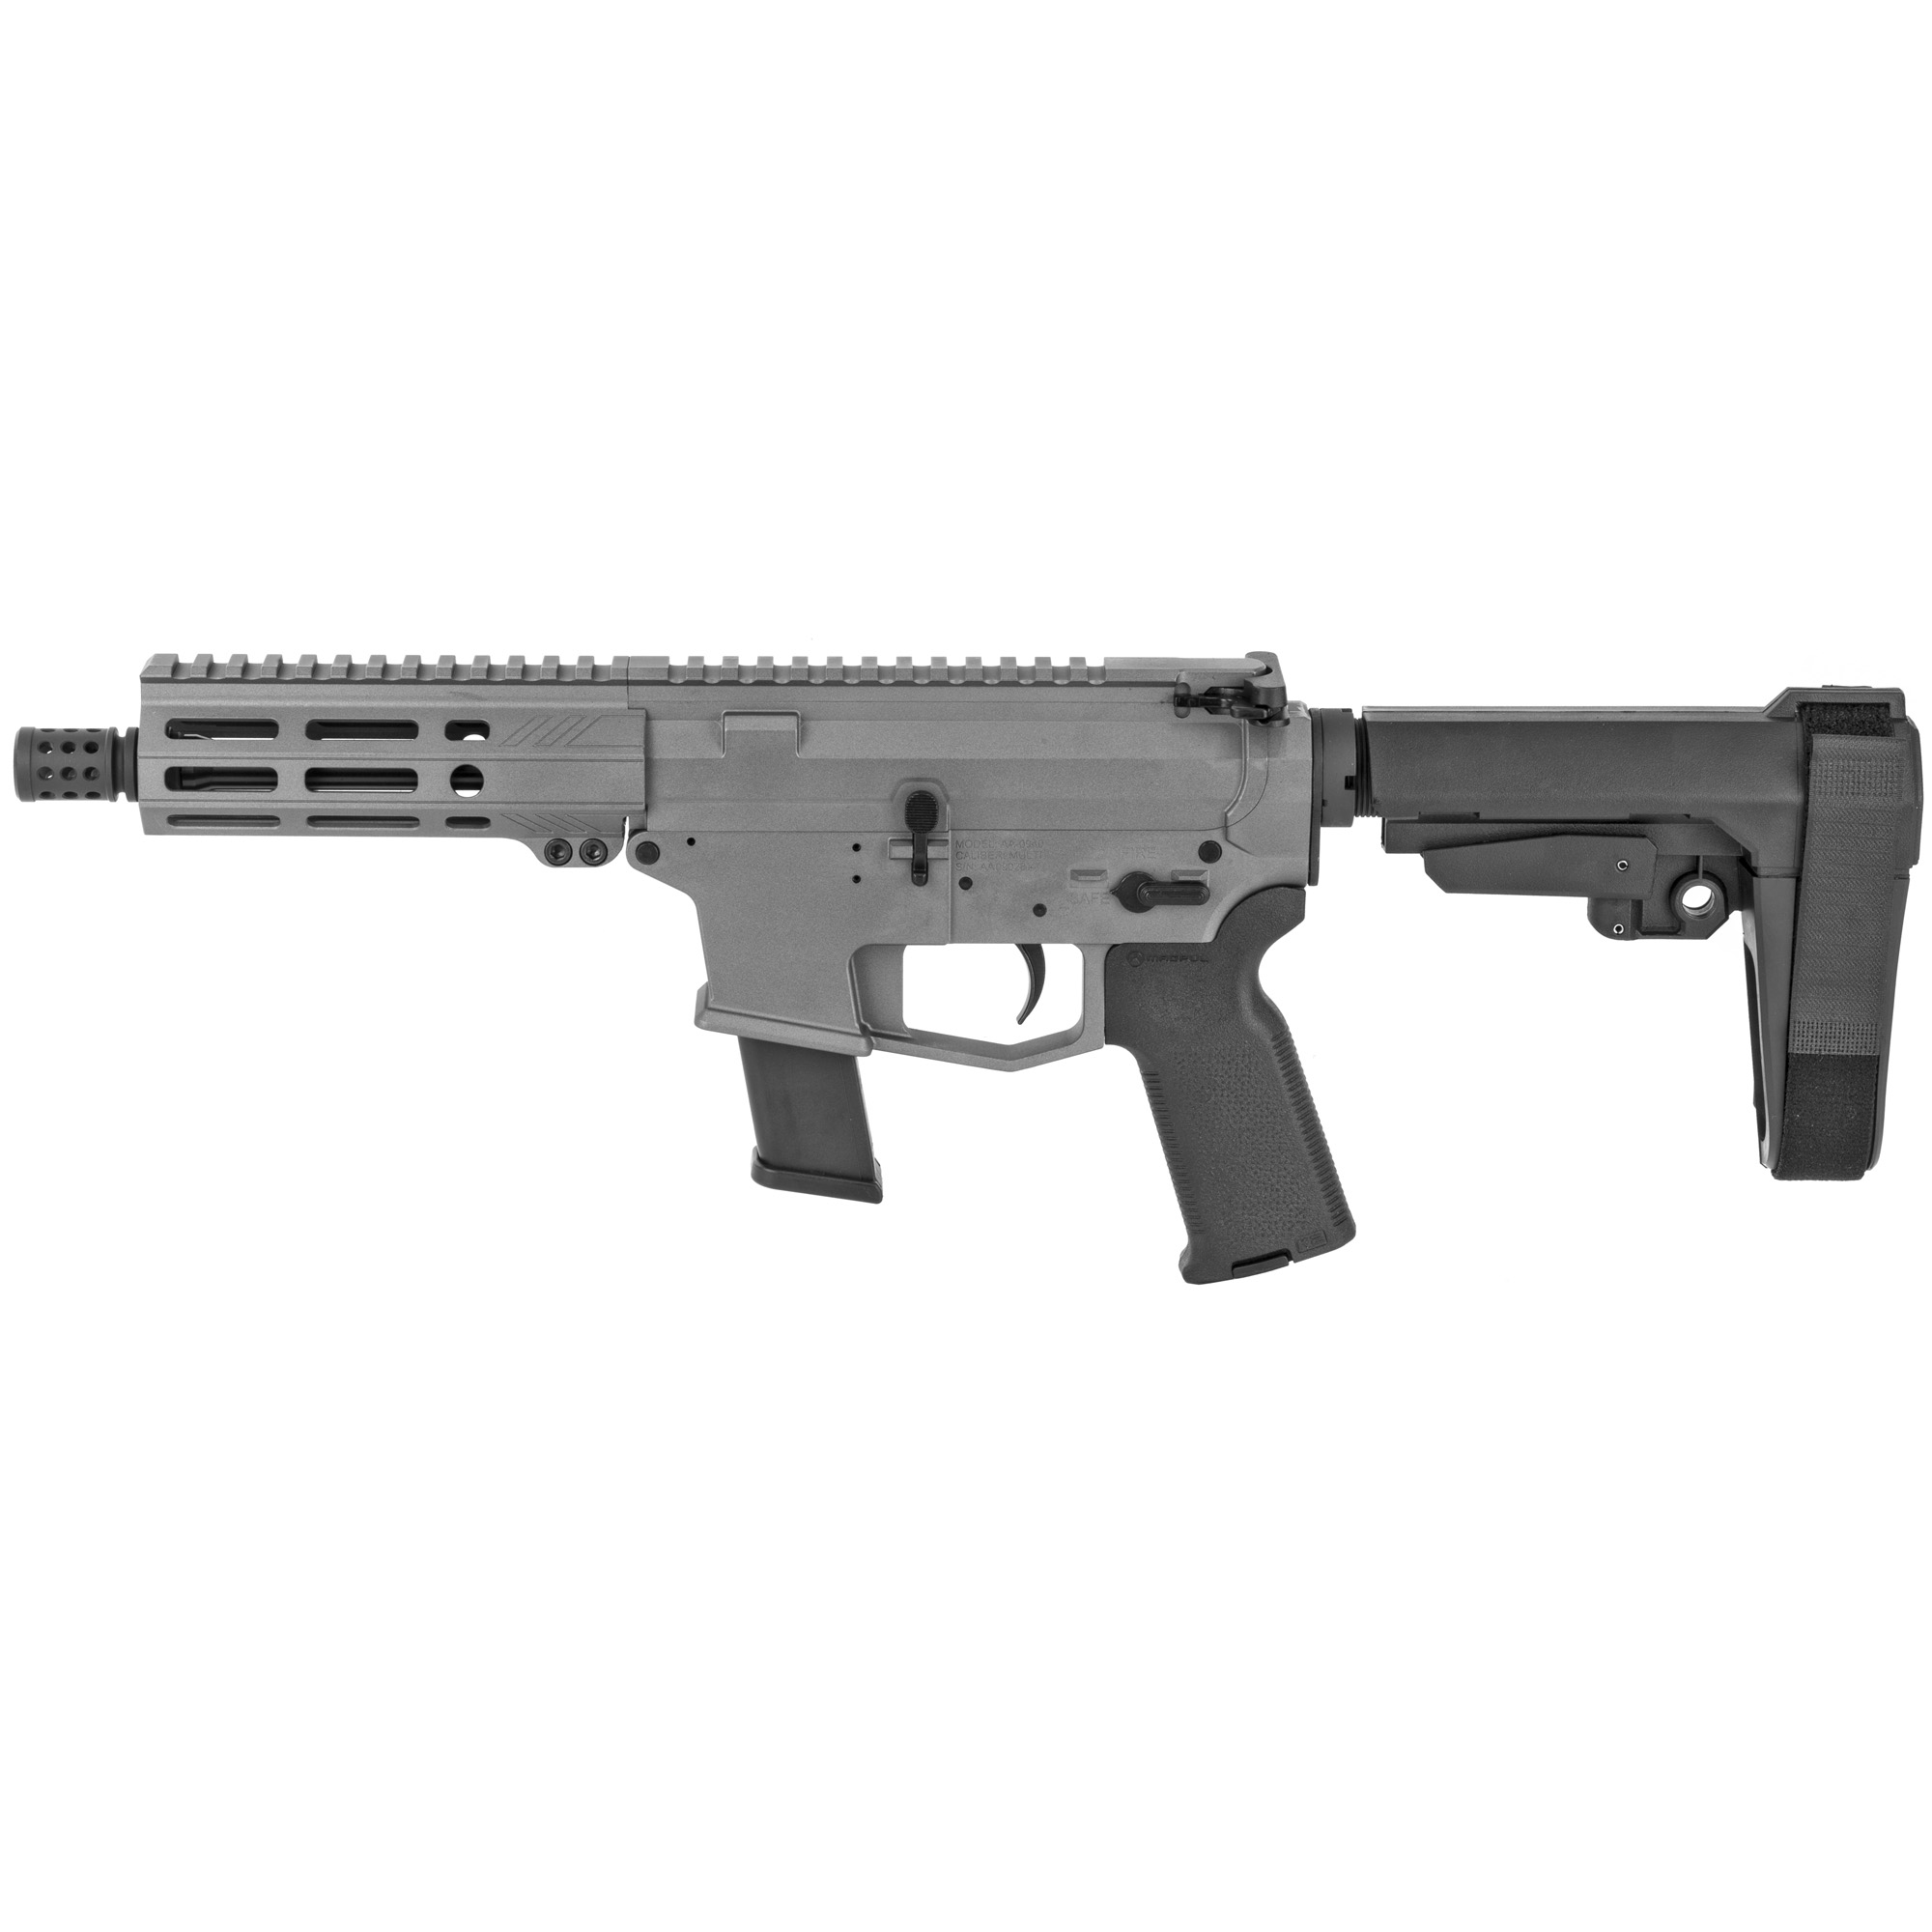 """The UDP-9 Pistol with SB Tactical SBA3 stabilizing brace is a compact AR-9 style firearm chambered in 9mm and fed with GLOCK(R) magazines. It features last round bolt hold open"""" an integrated trigger guard"""" flared magwell and a 5.5"""" free float M-LOK hand guard with a modern"""" ergonomic"""" 7 side design. Machined from 7075-T6 aluminum and finished in a beautiful Tactical Grey Cerakote! The UDP-9 comes with a lifetime warranty. Includes one GLOCK(R) OEM 9mm magazine."""